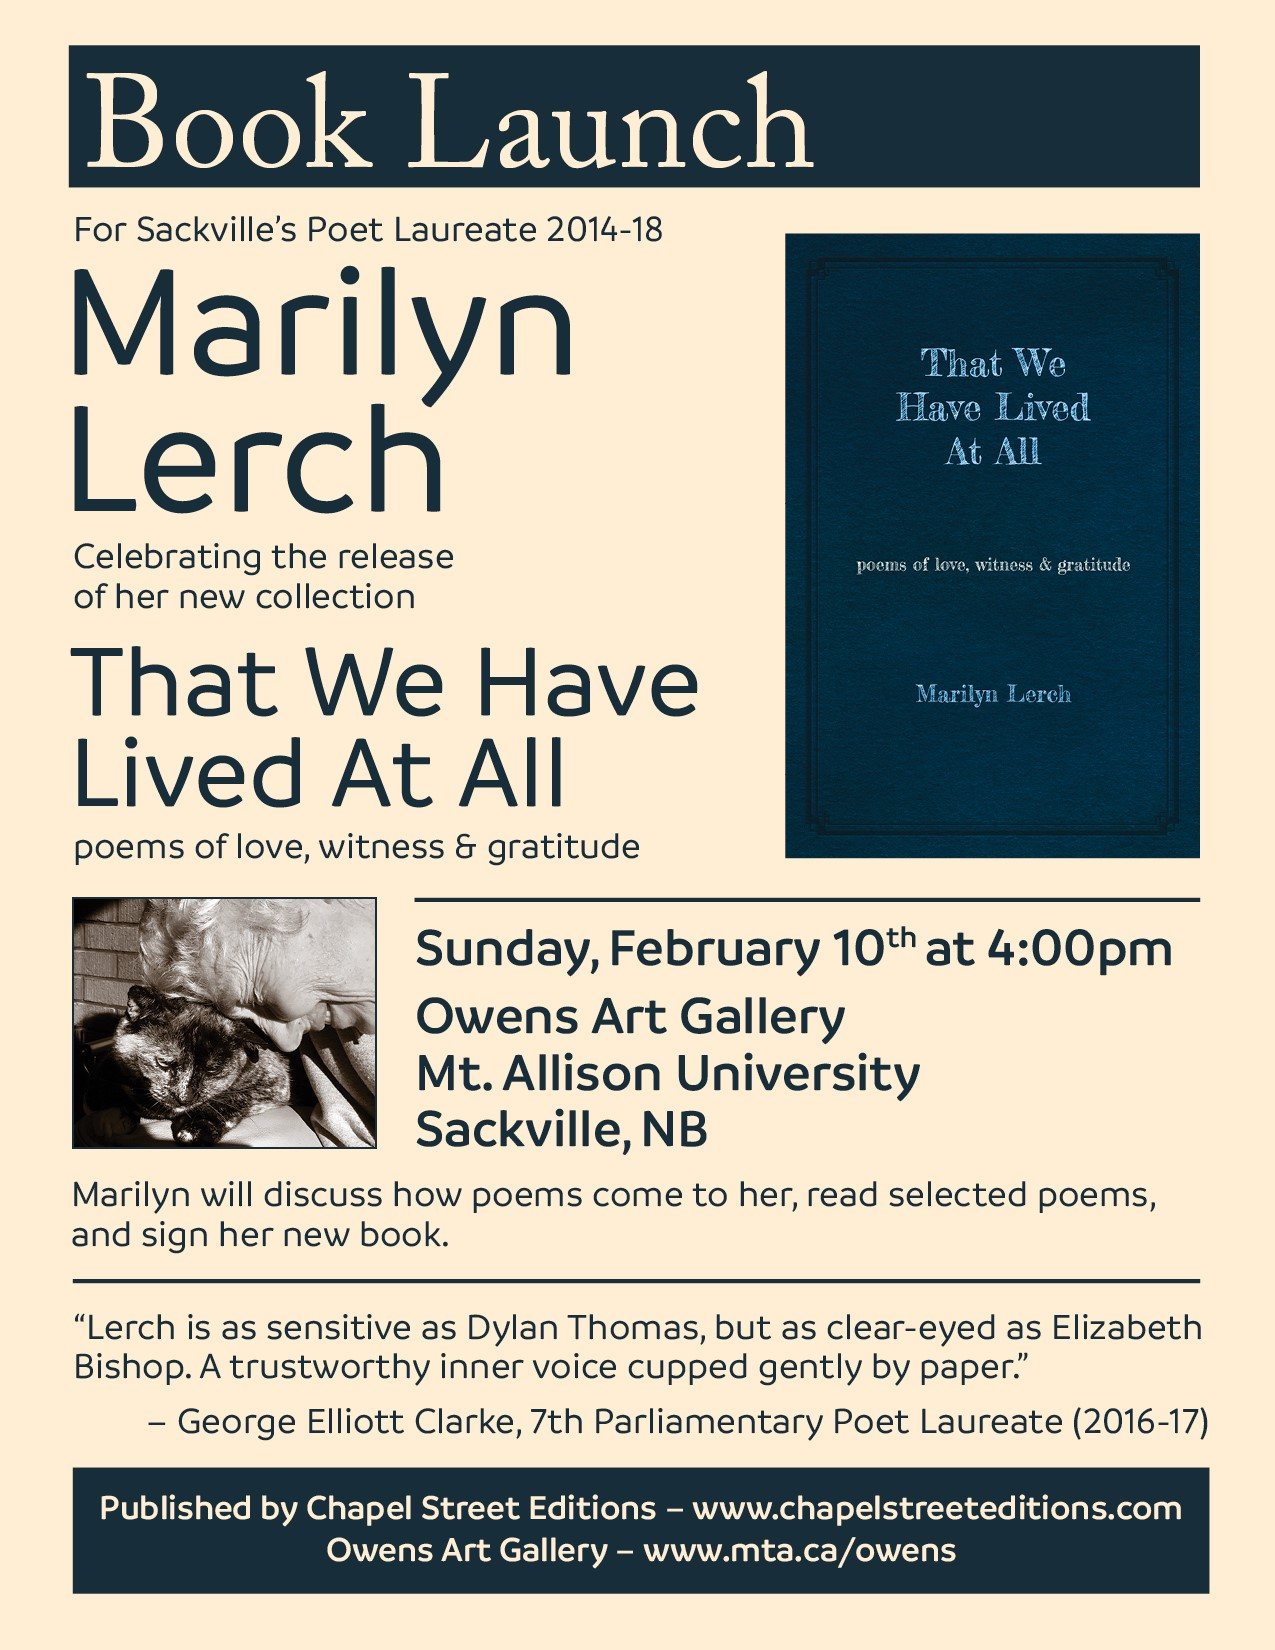 poster for book launch of Marilyn Lerch poems